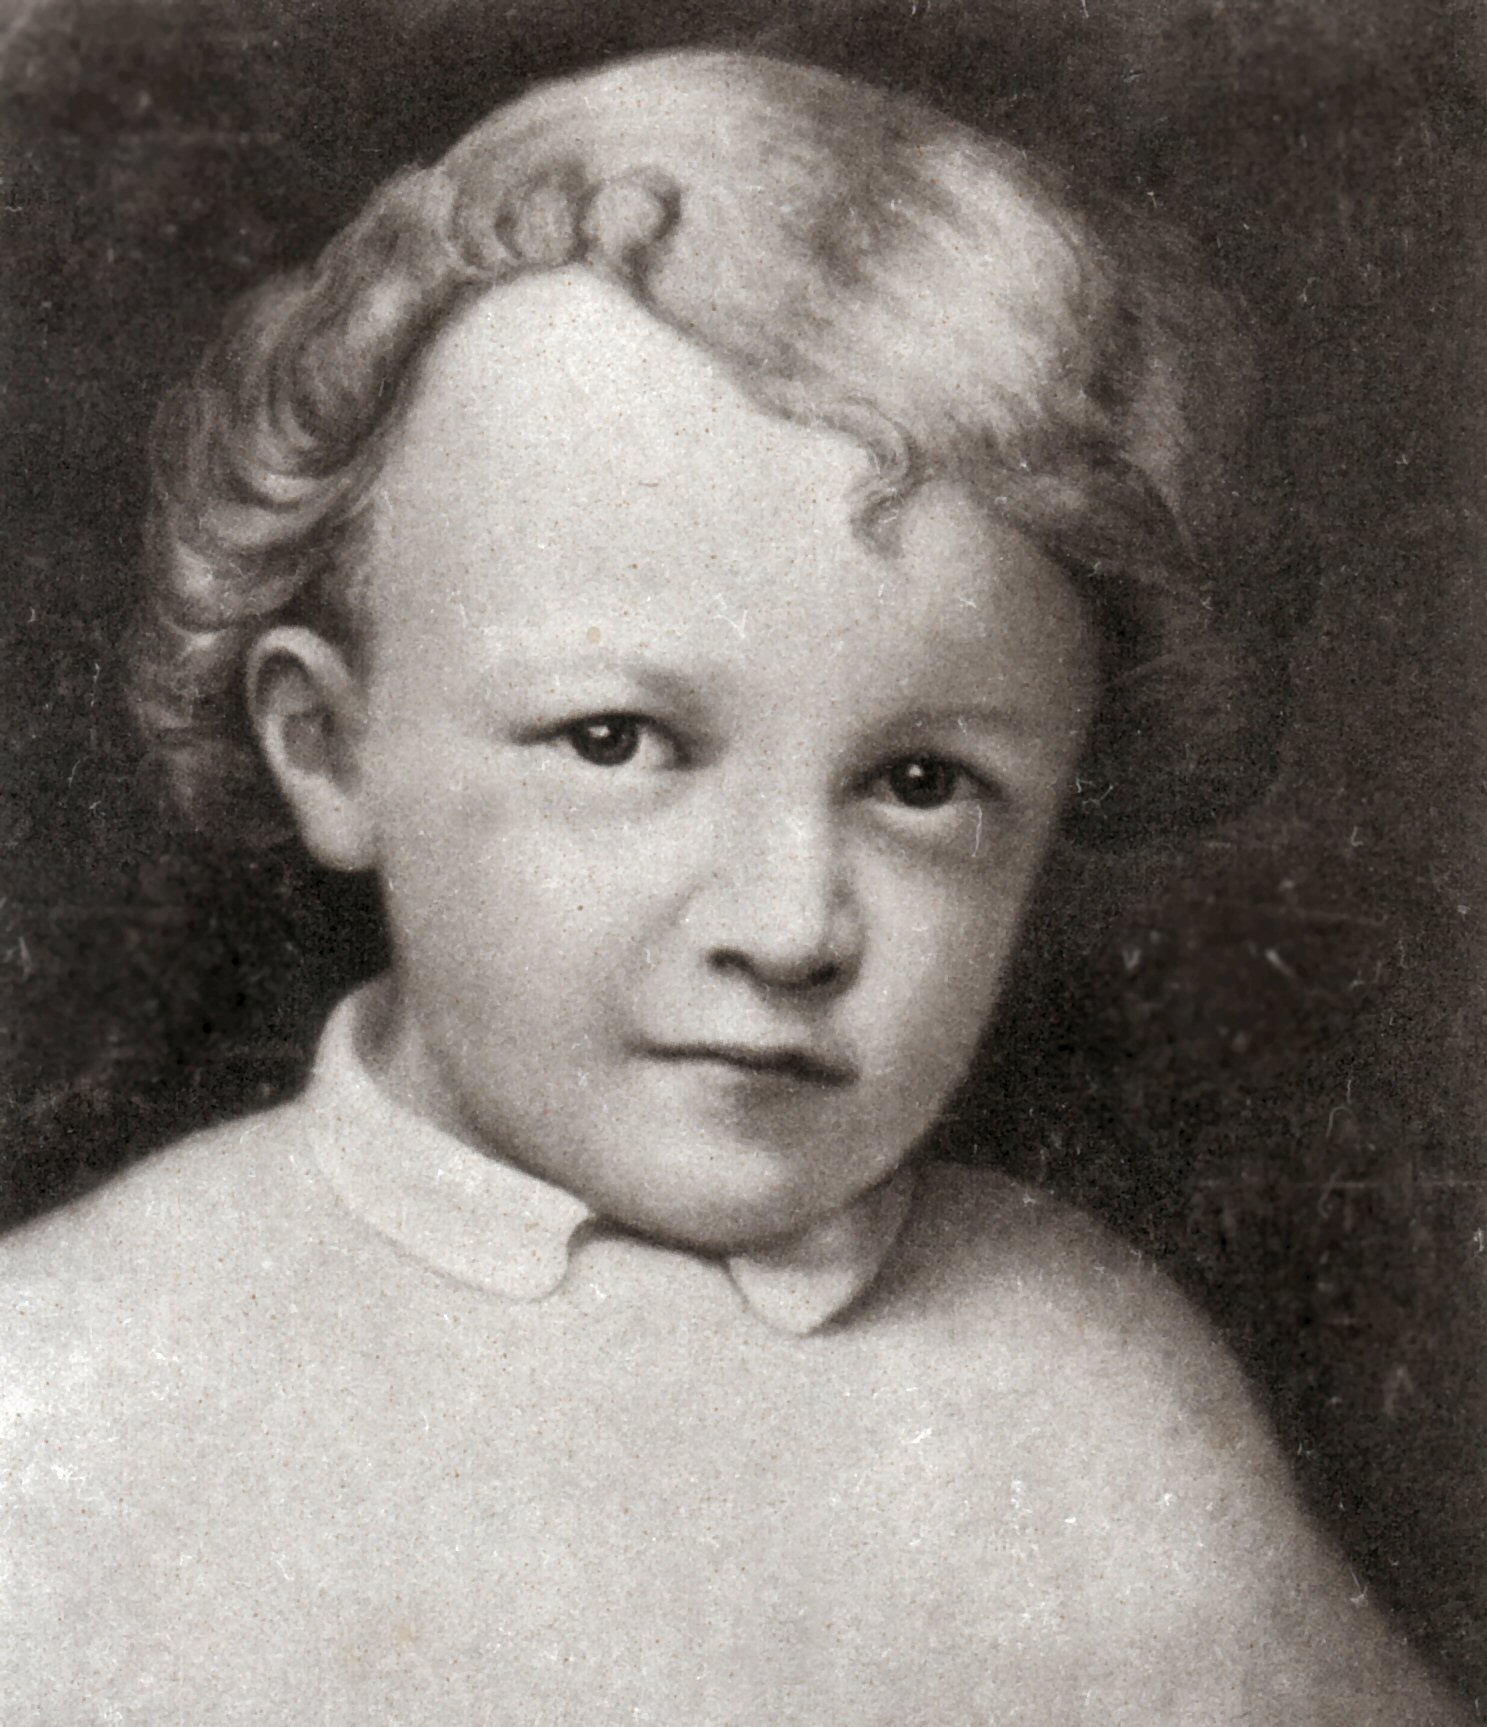 A portrait of Lenin at around age 4